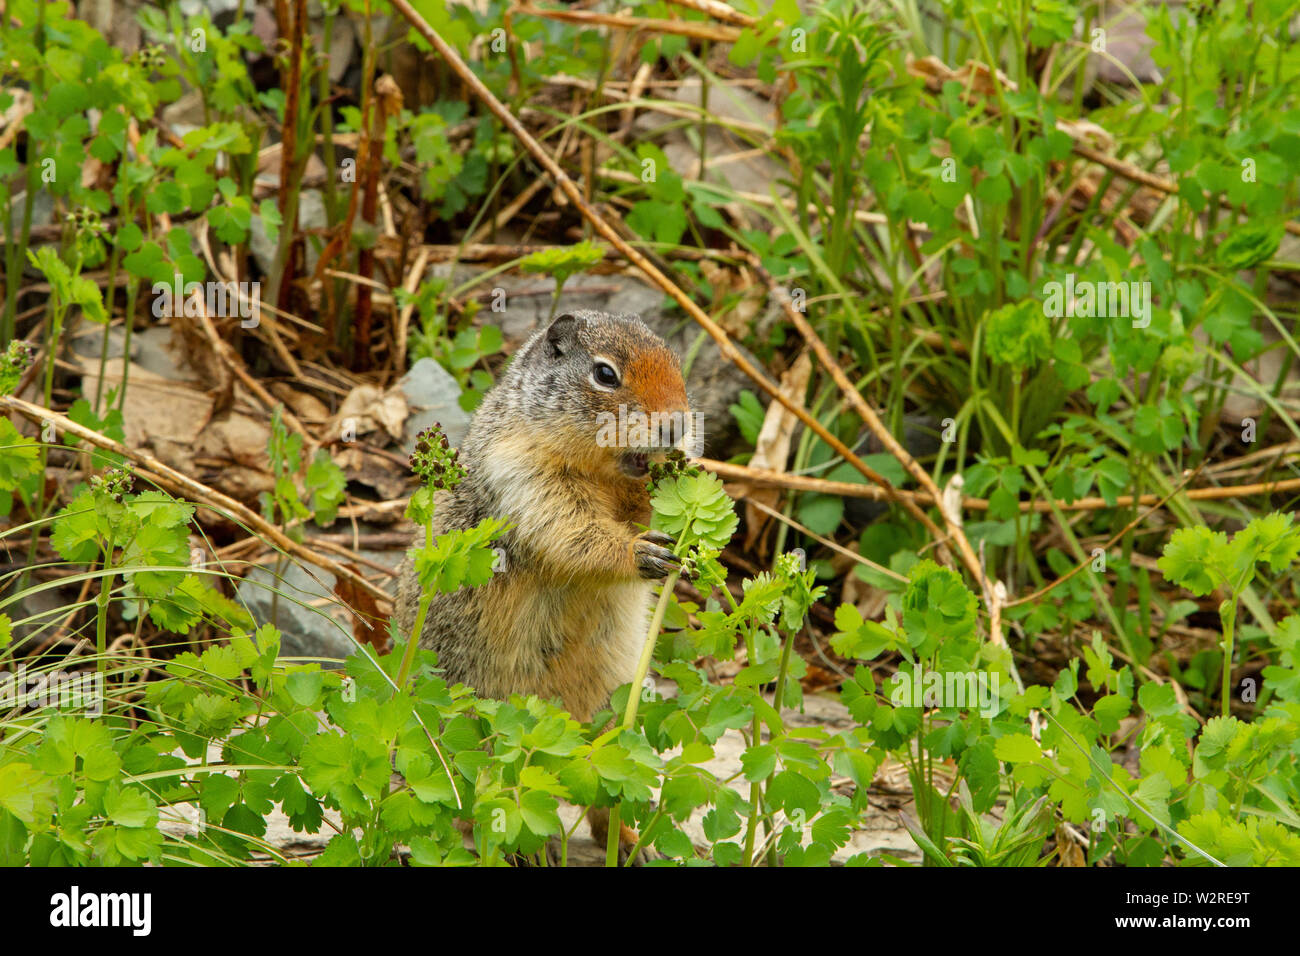 Columbian ground squirrel (Urocitellus columbianus) feeding on vegetation, the Highline Trail, Glacier National Park, Montana, Rocky Mountains, USA. Stock Photo